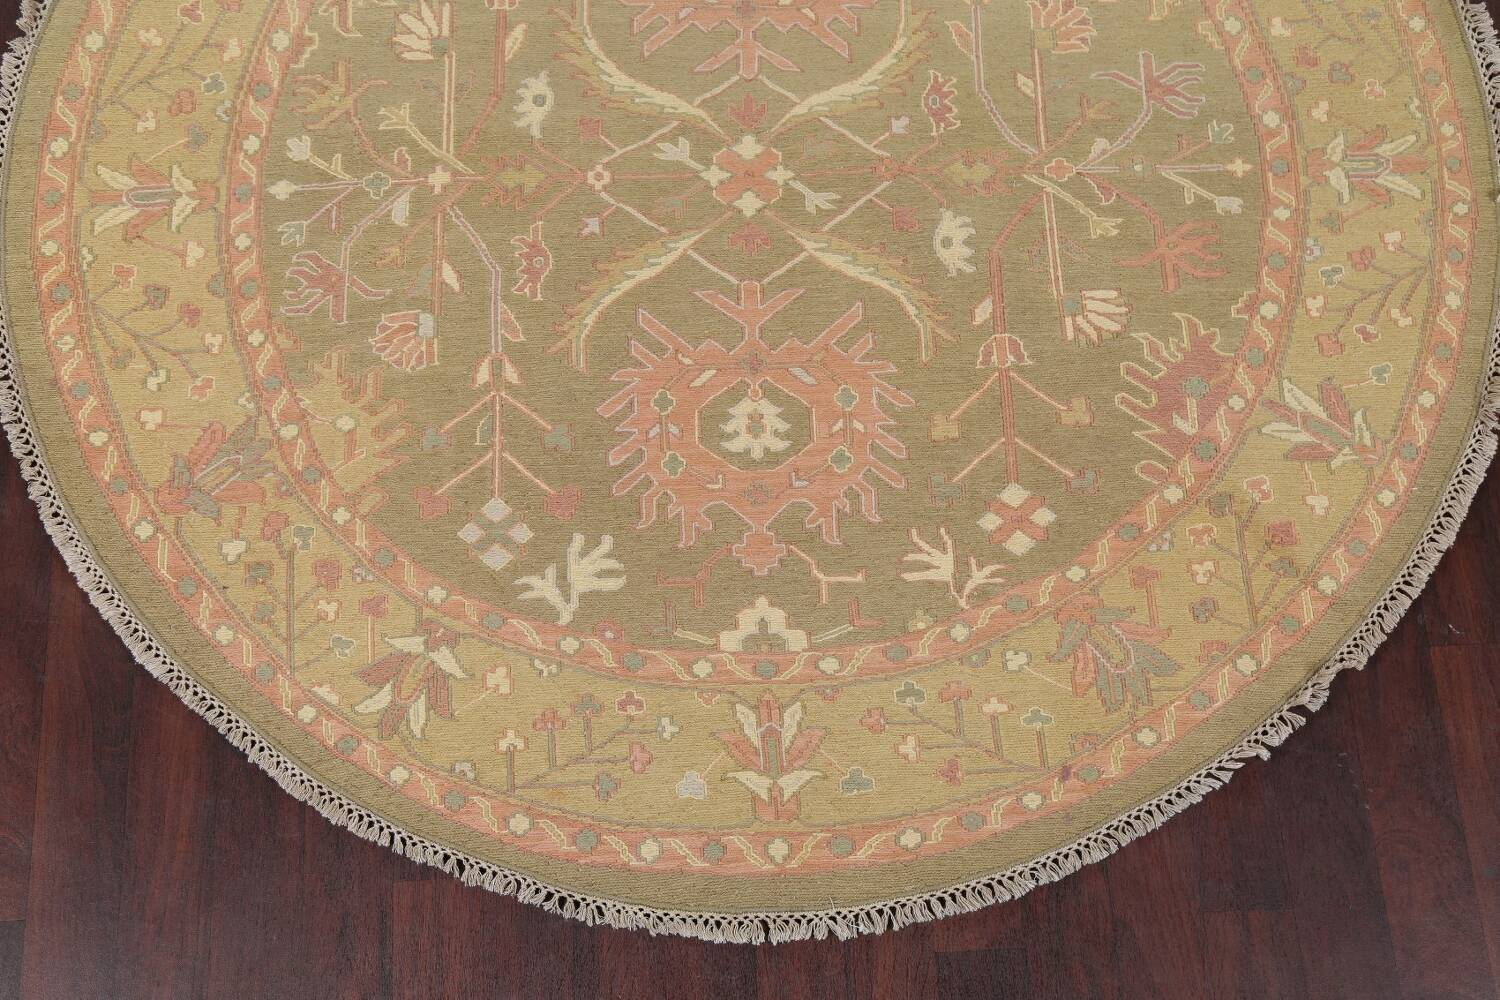 All-Over Green Floral Sumak Oriental Area Rug 8x8 Roud image 8